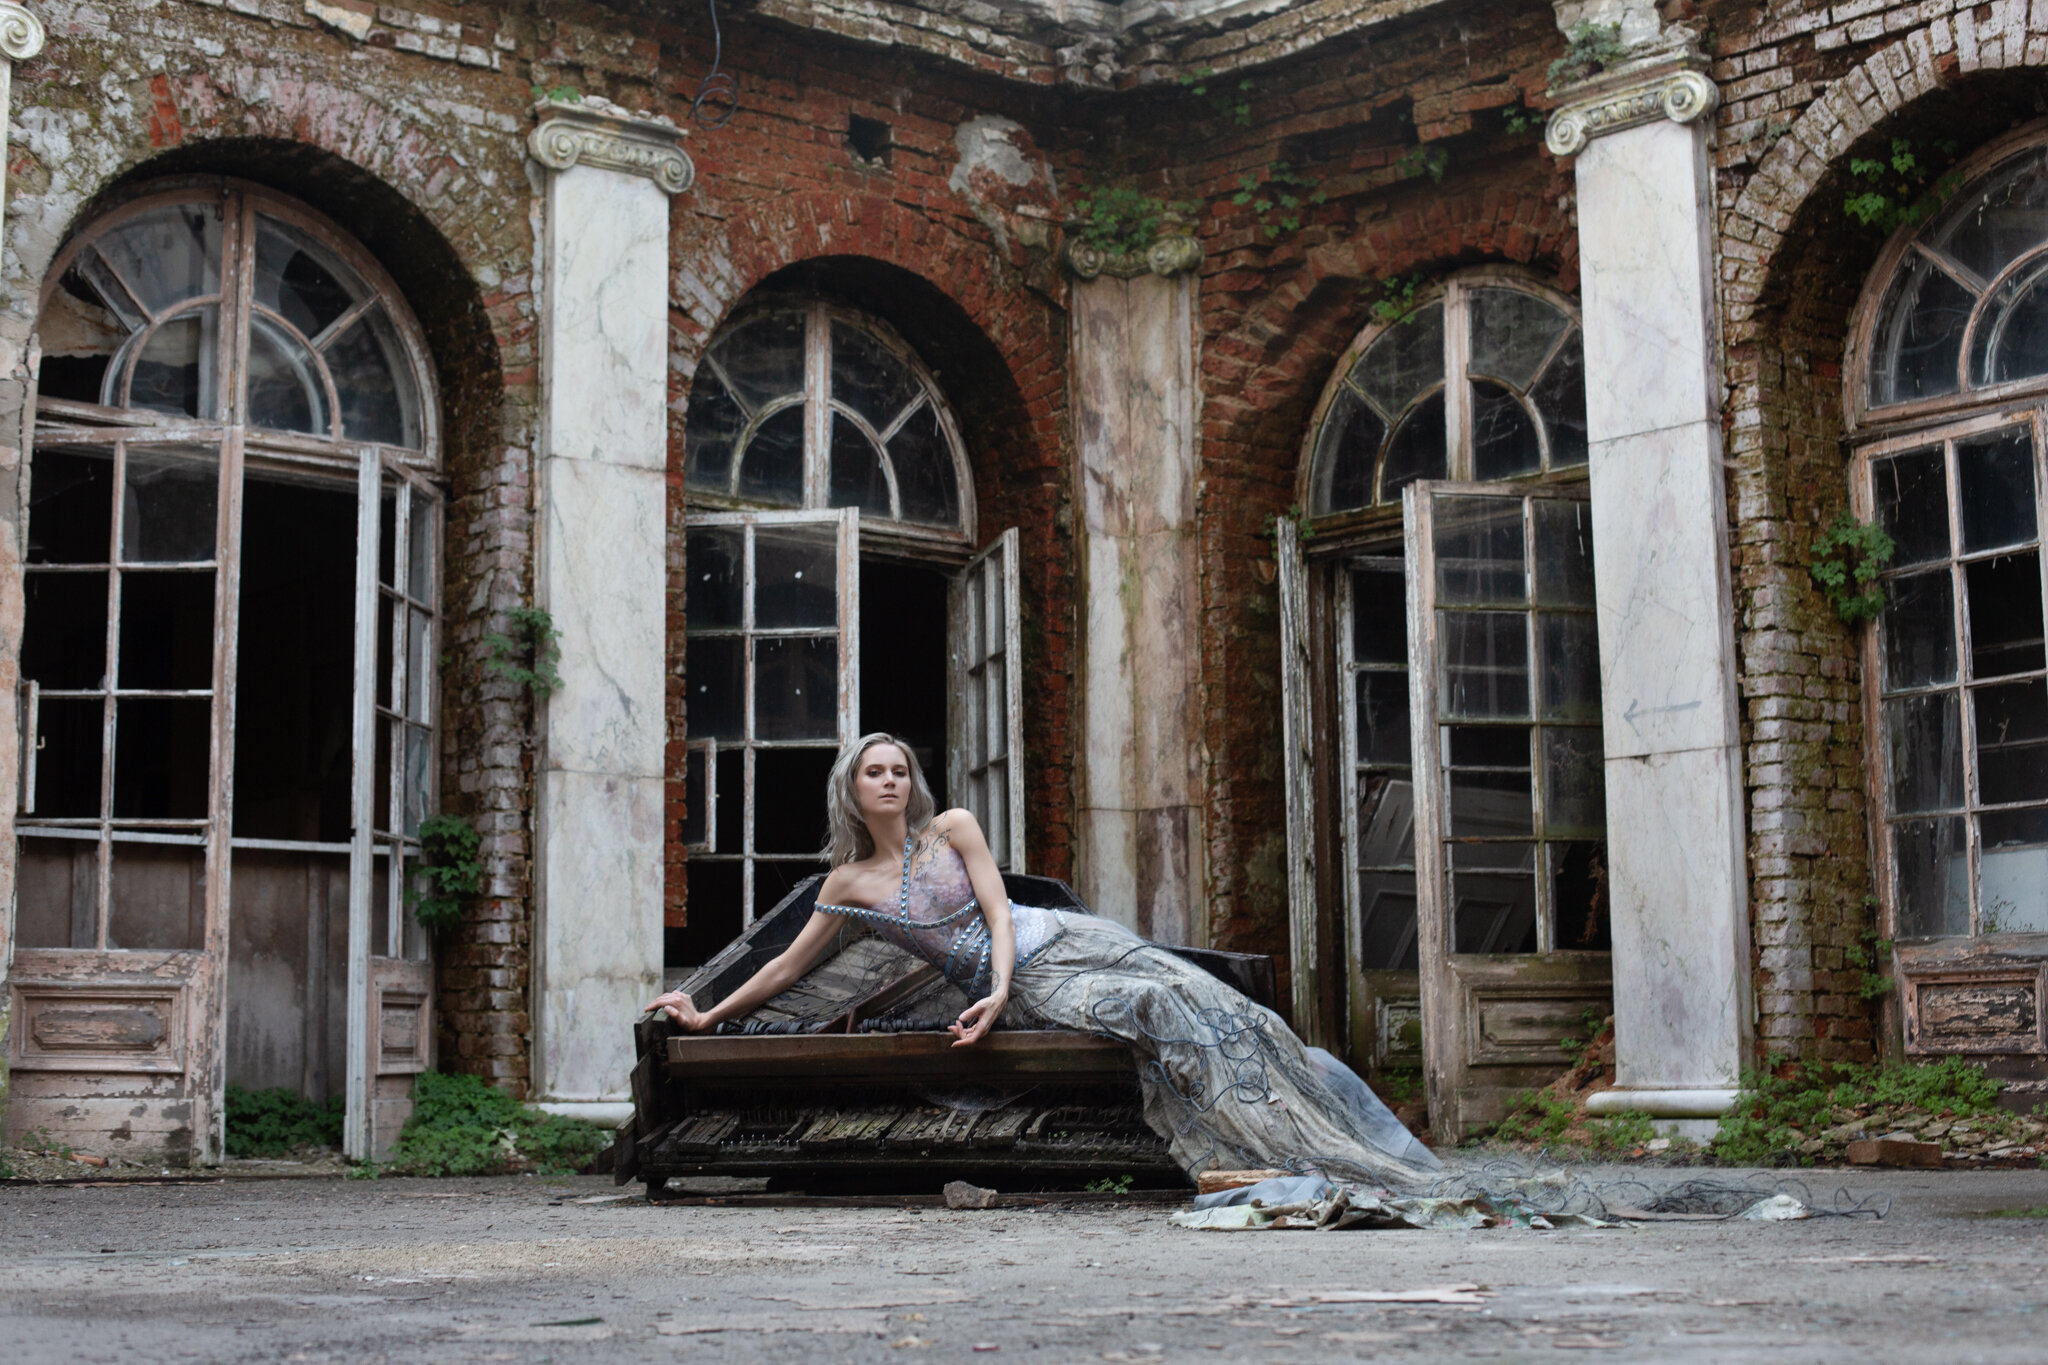 Roxx, shot by Redd, at an abandoned palace in Poland. Wearing a garment constructed from a disintegrating map of Europe (found on site), used fishing net, rubber bath-mat, and recycled belts.